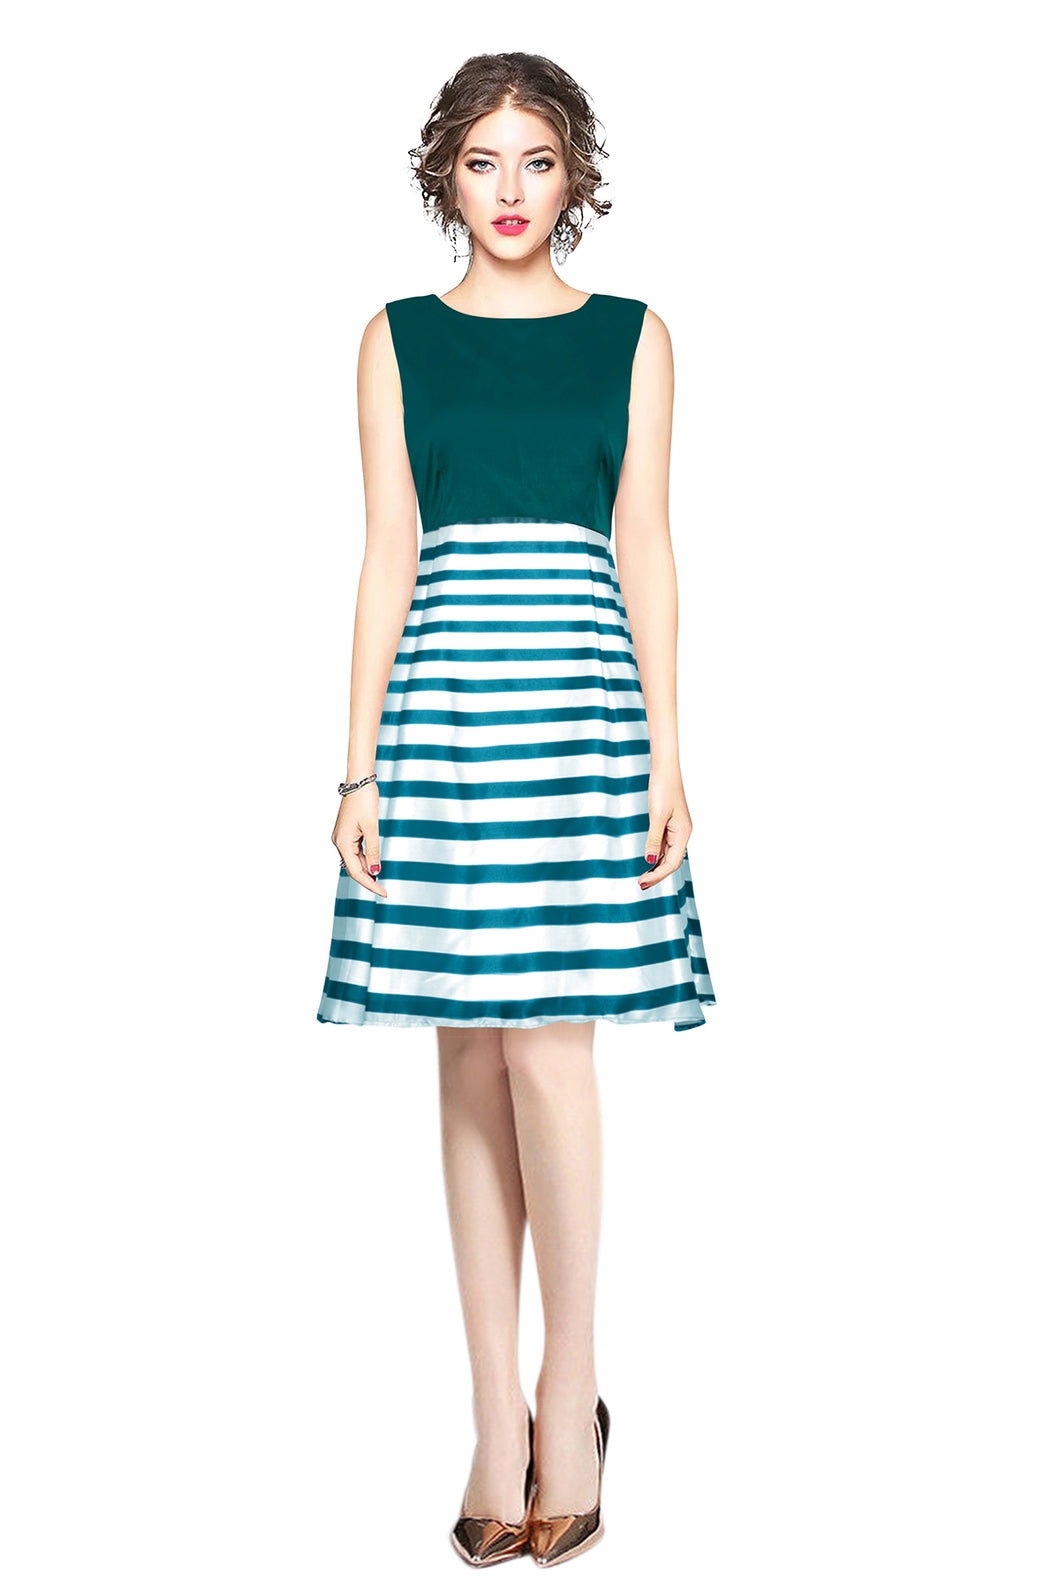 Sleeveless striped Retro style dress - ForHar Closet